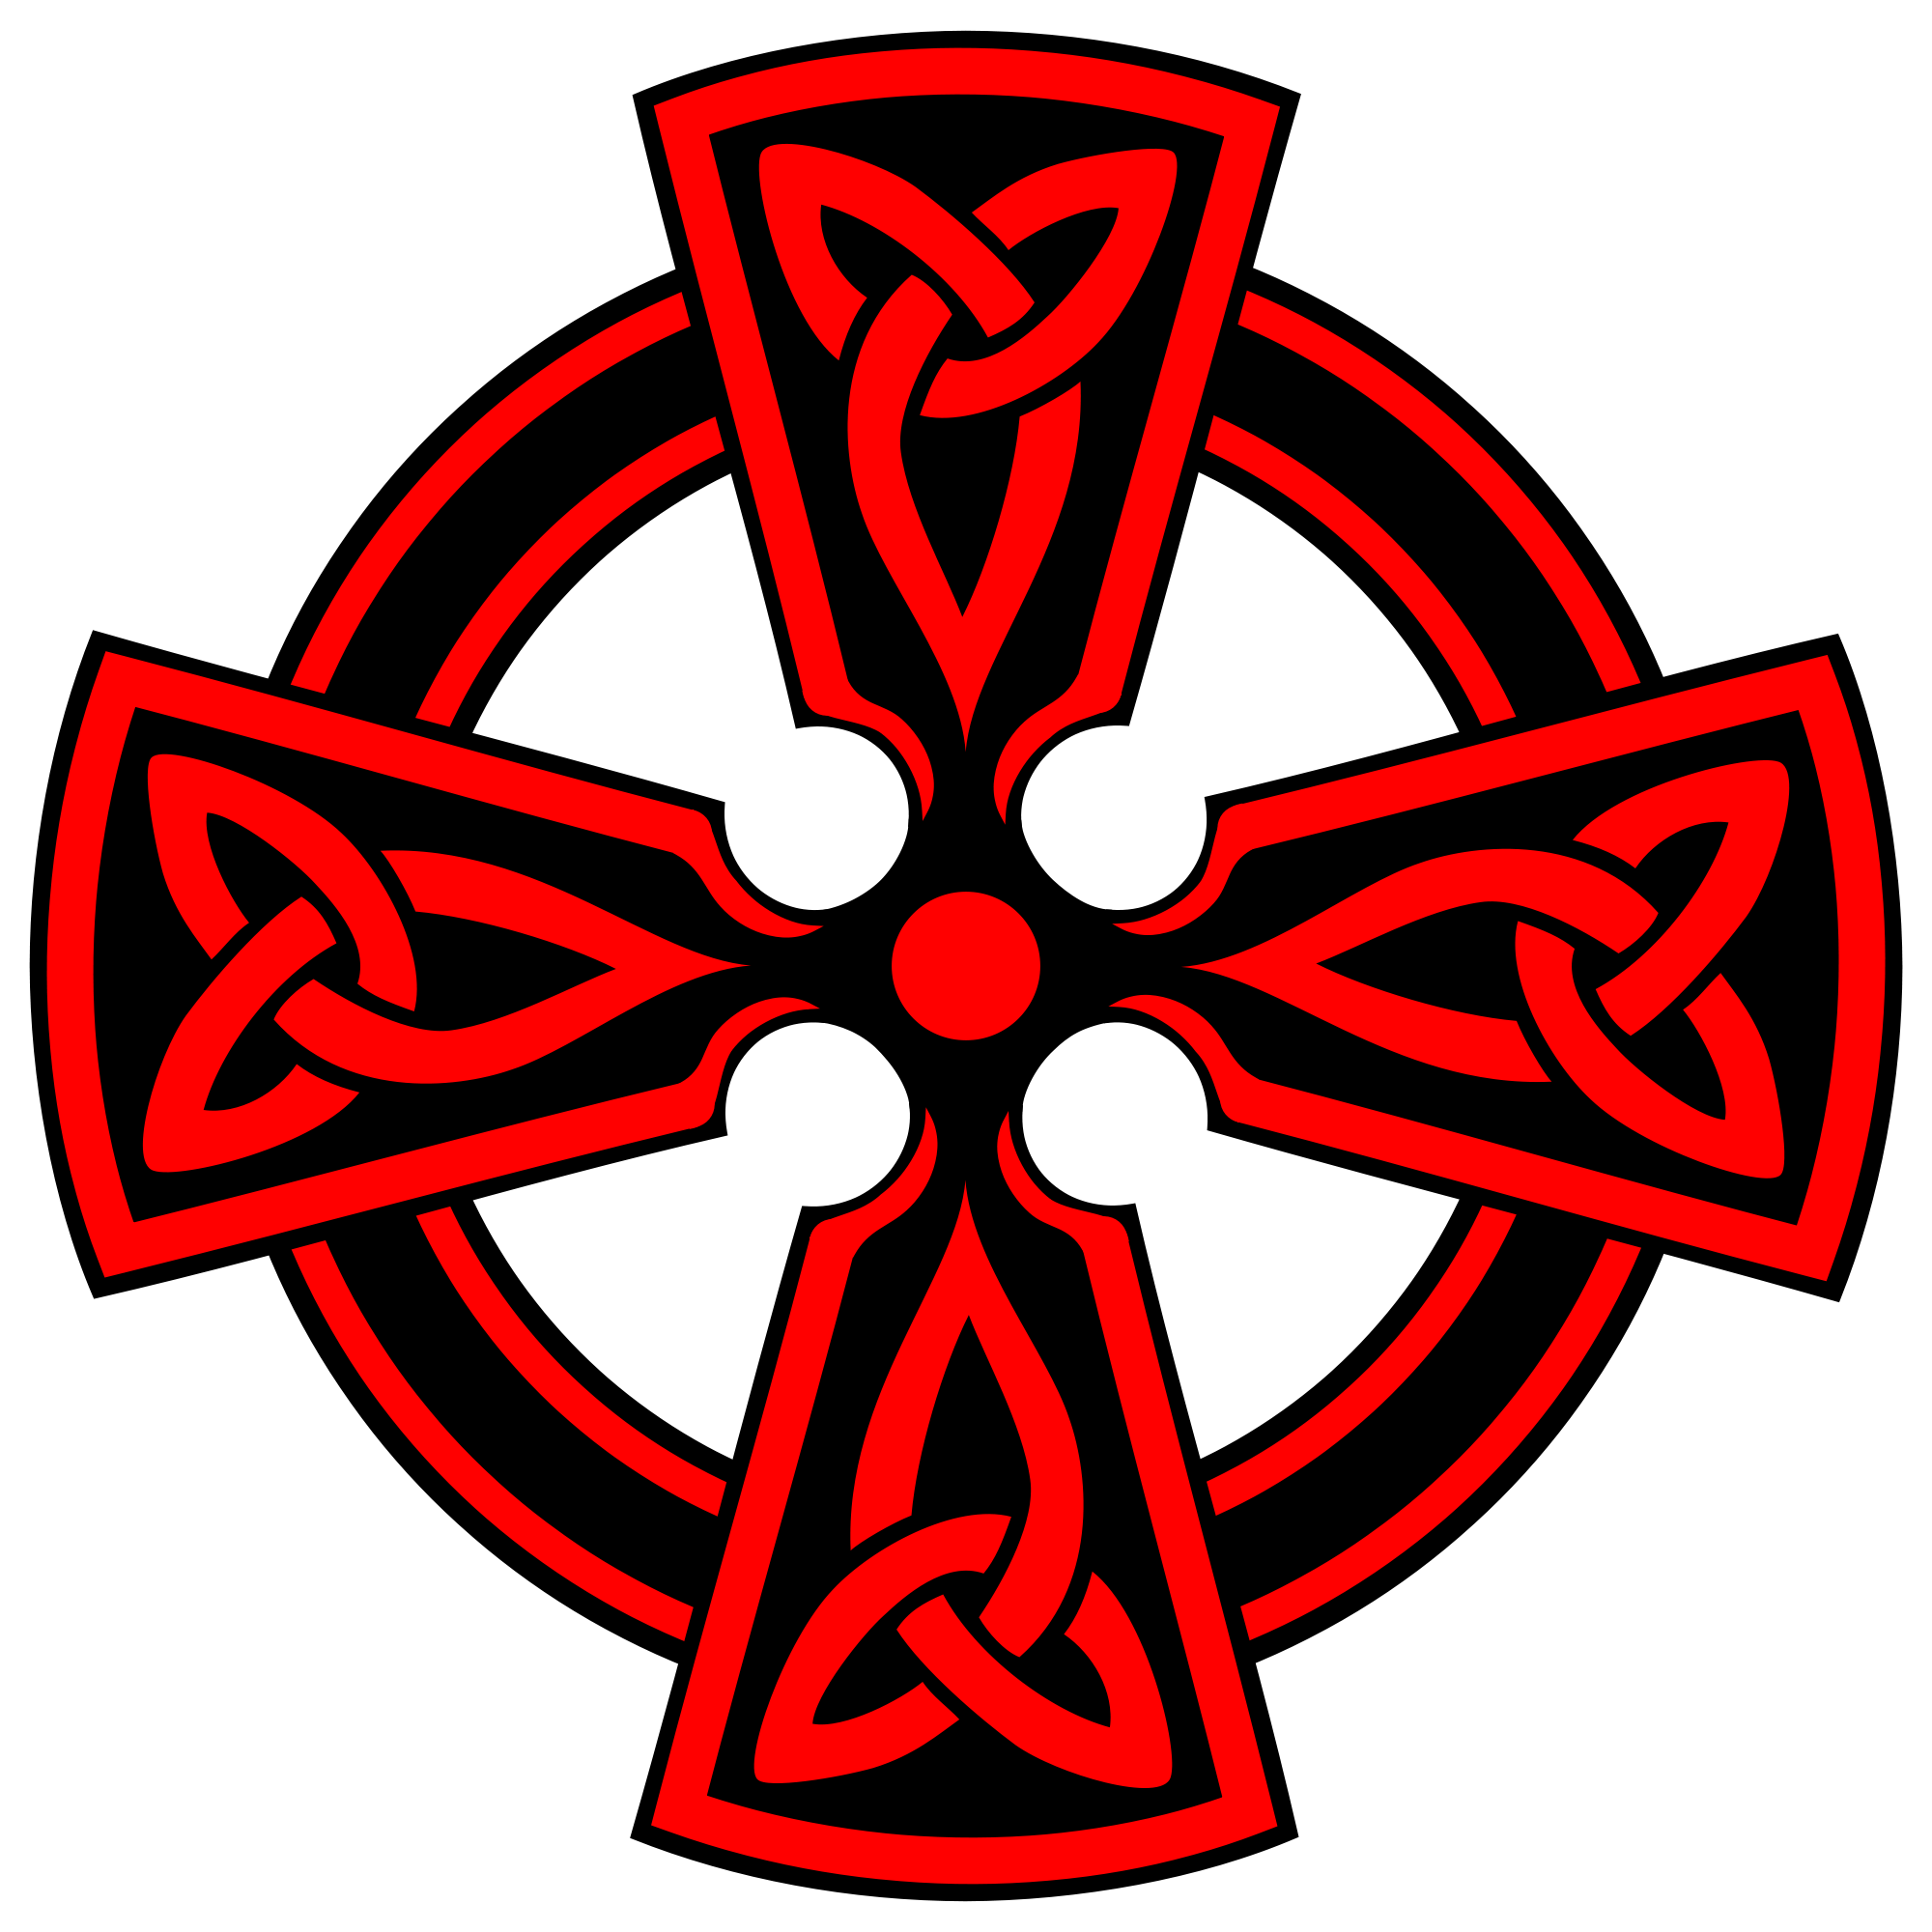 Trinity cross clipart black and white File:Celtic-Cross-Vodicka-decorative-triquetras-red.svg - Wikimedia ... black and white